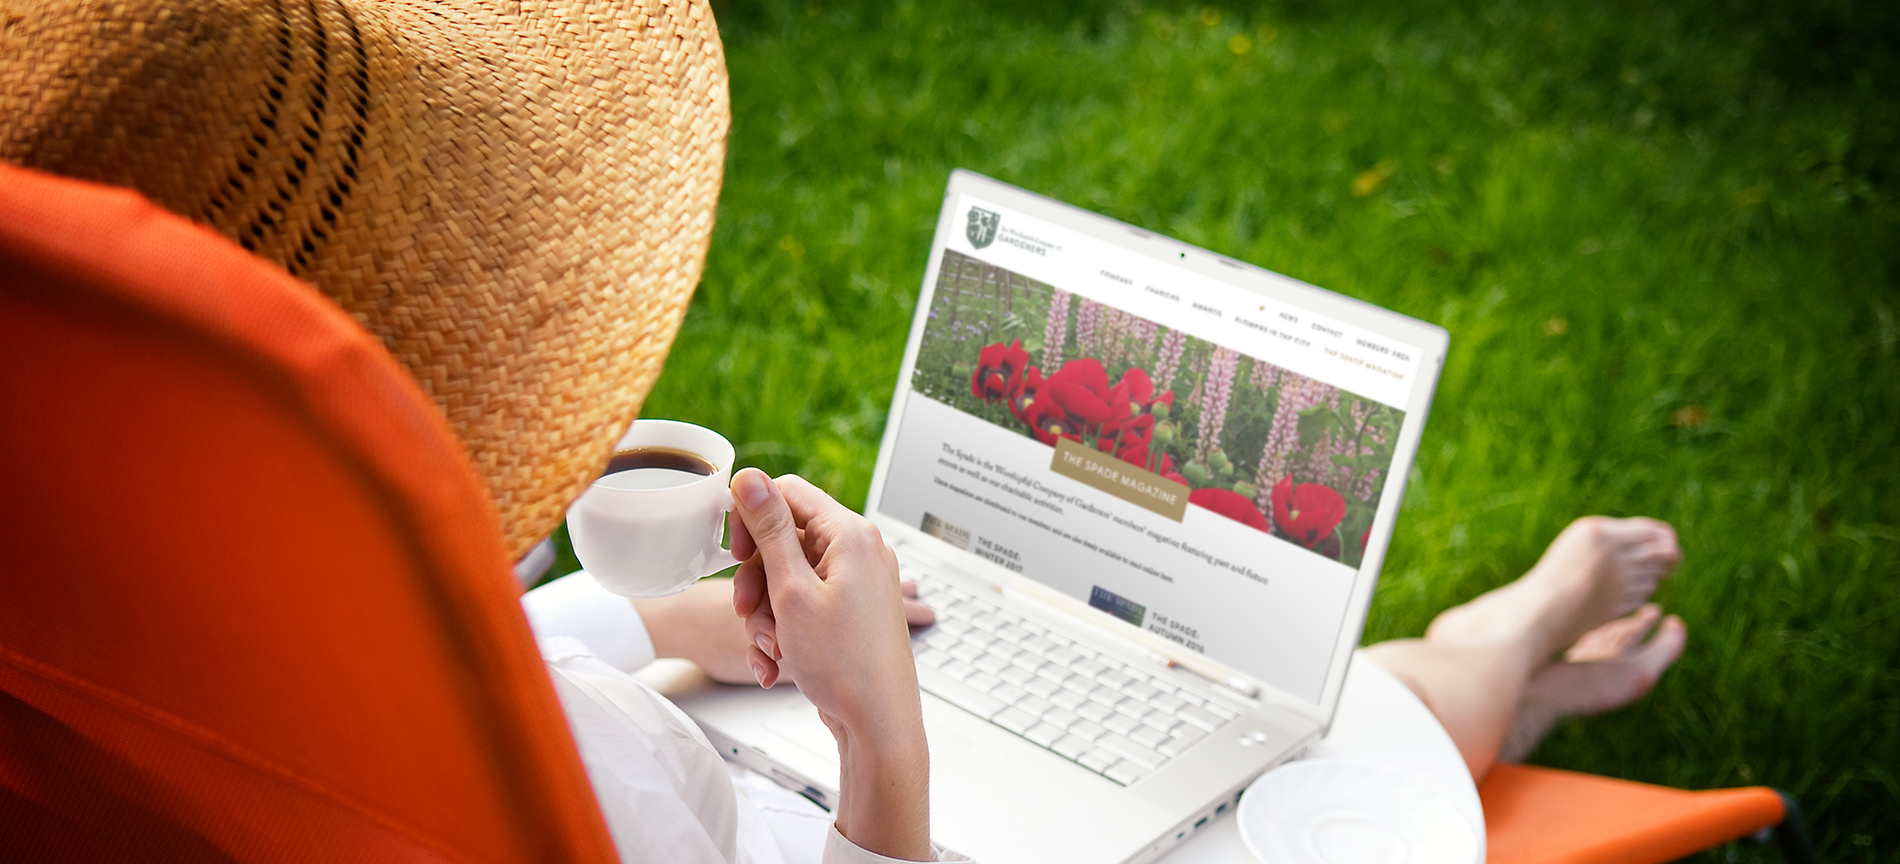 A lady looking at the Worshipful Company of Gardeners website on a laptop in the garden - desktop